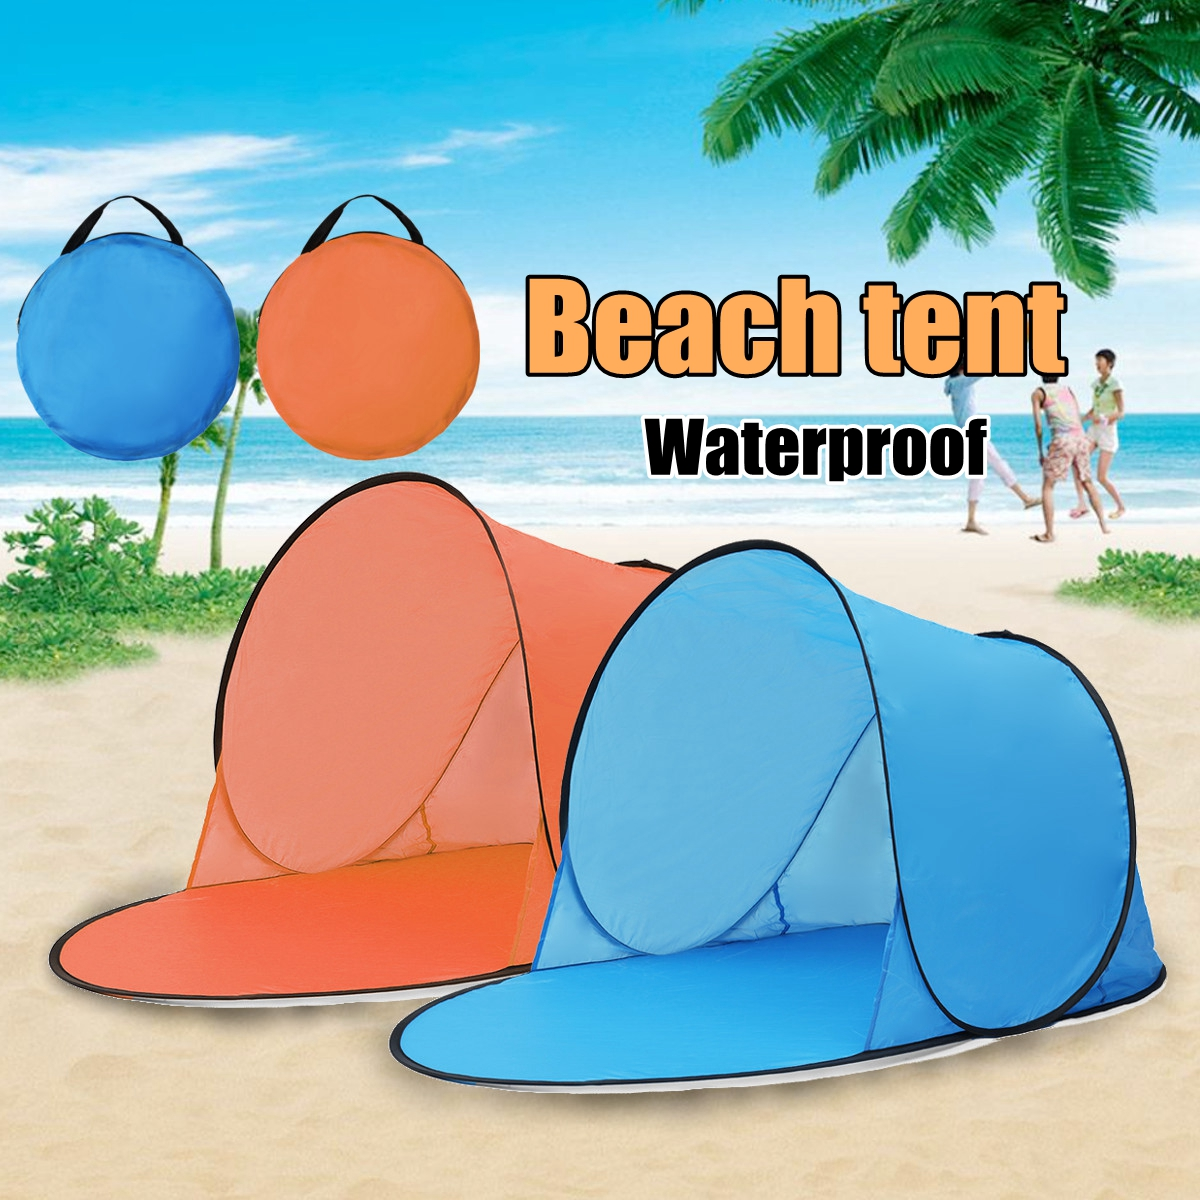 Outdoor Portable Waterproof Camping Beach Tent Pop Up Open Camping Tent Fishing Hiking O ...